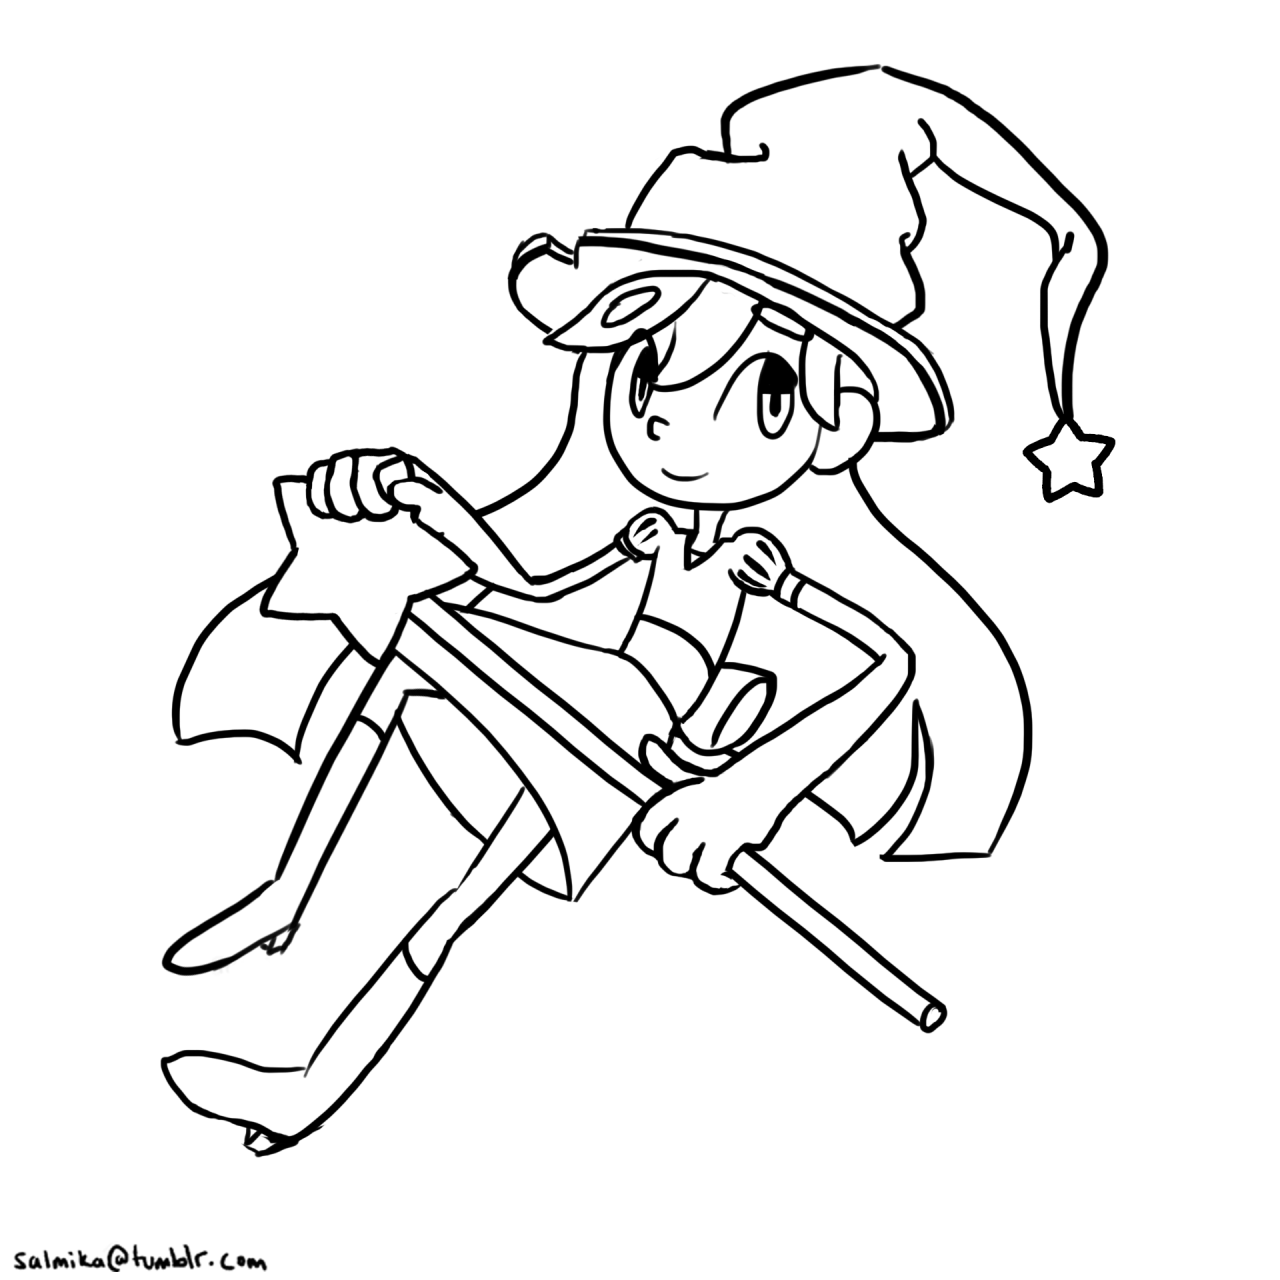 Today's daily doodle is just the outline, tomorrow will be color! :D #44